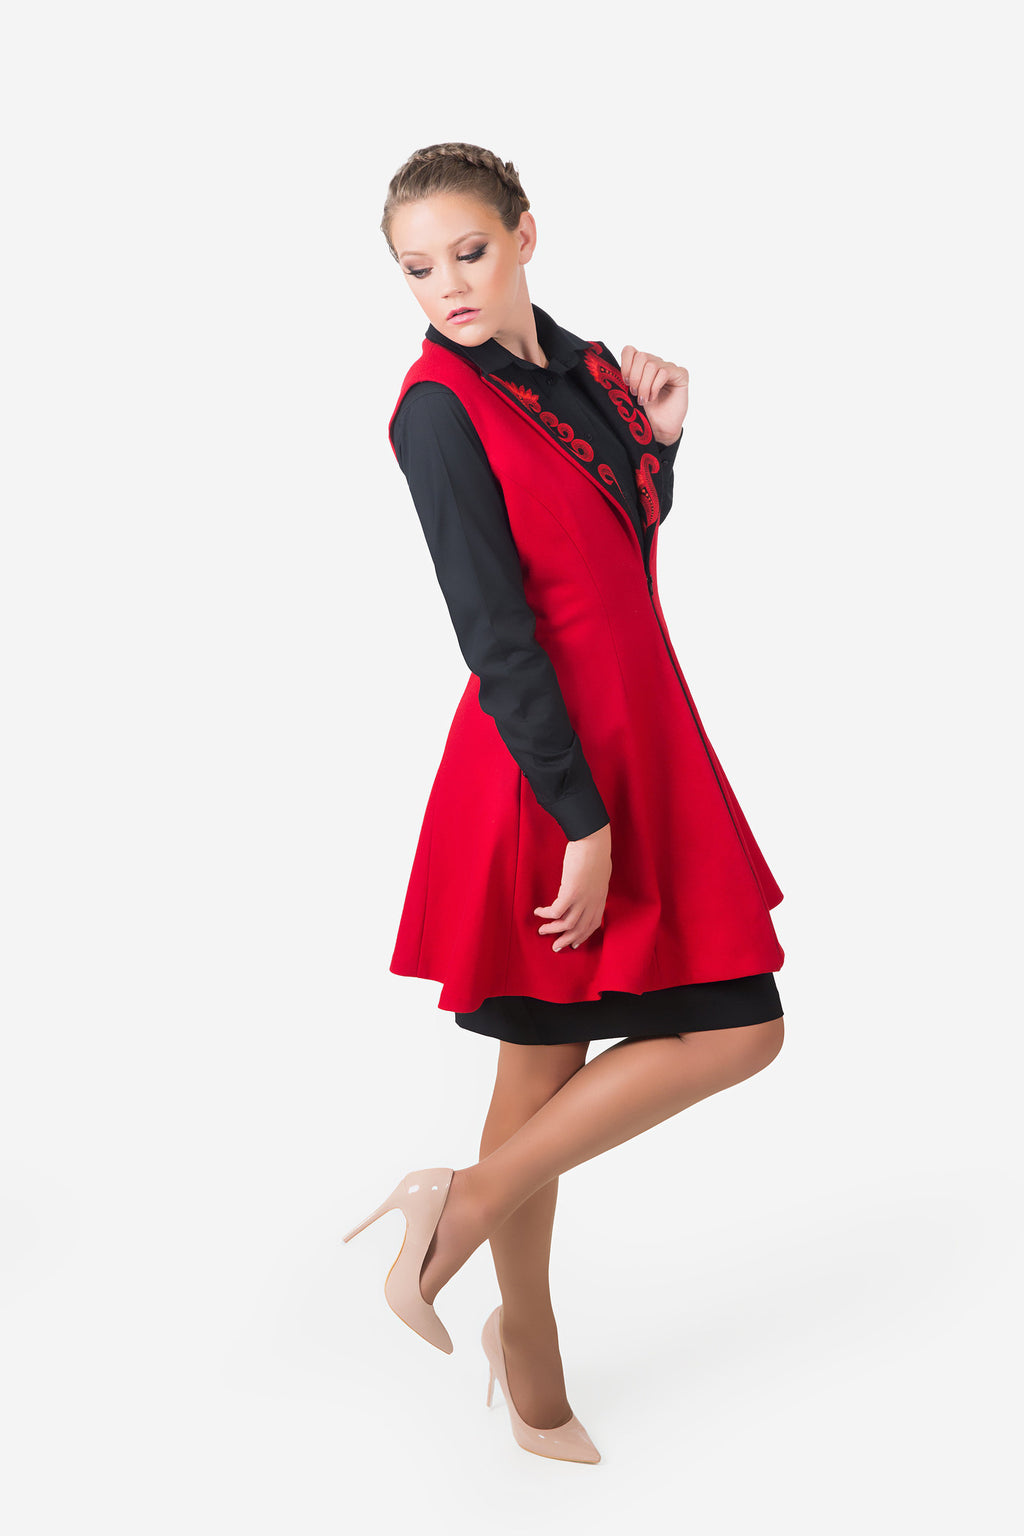 Stylish women's red vest made from fine wool. Side view displaying the accented front opening.  Comfortable yet modern.